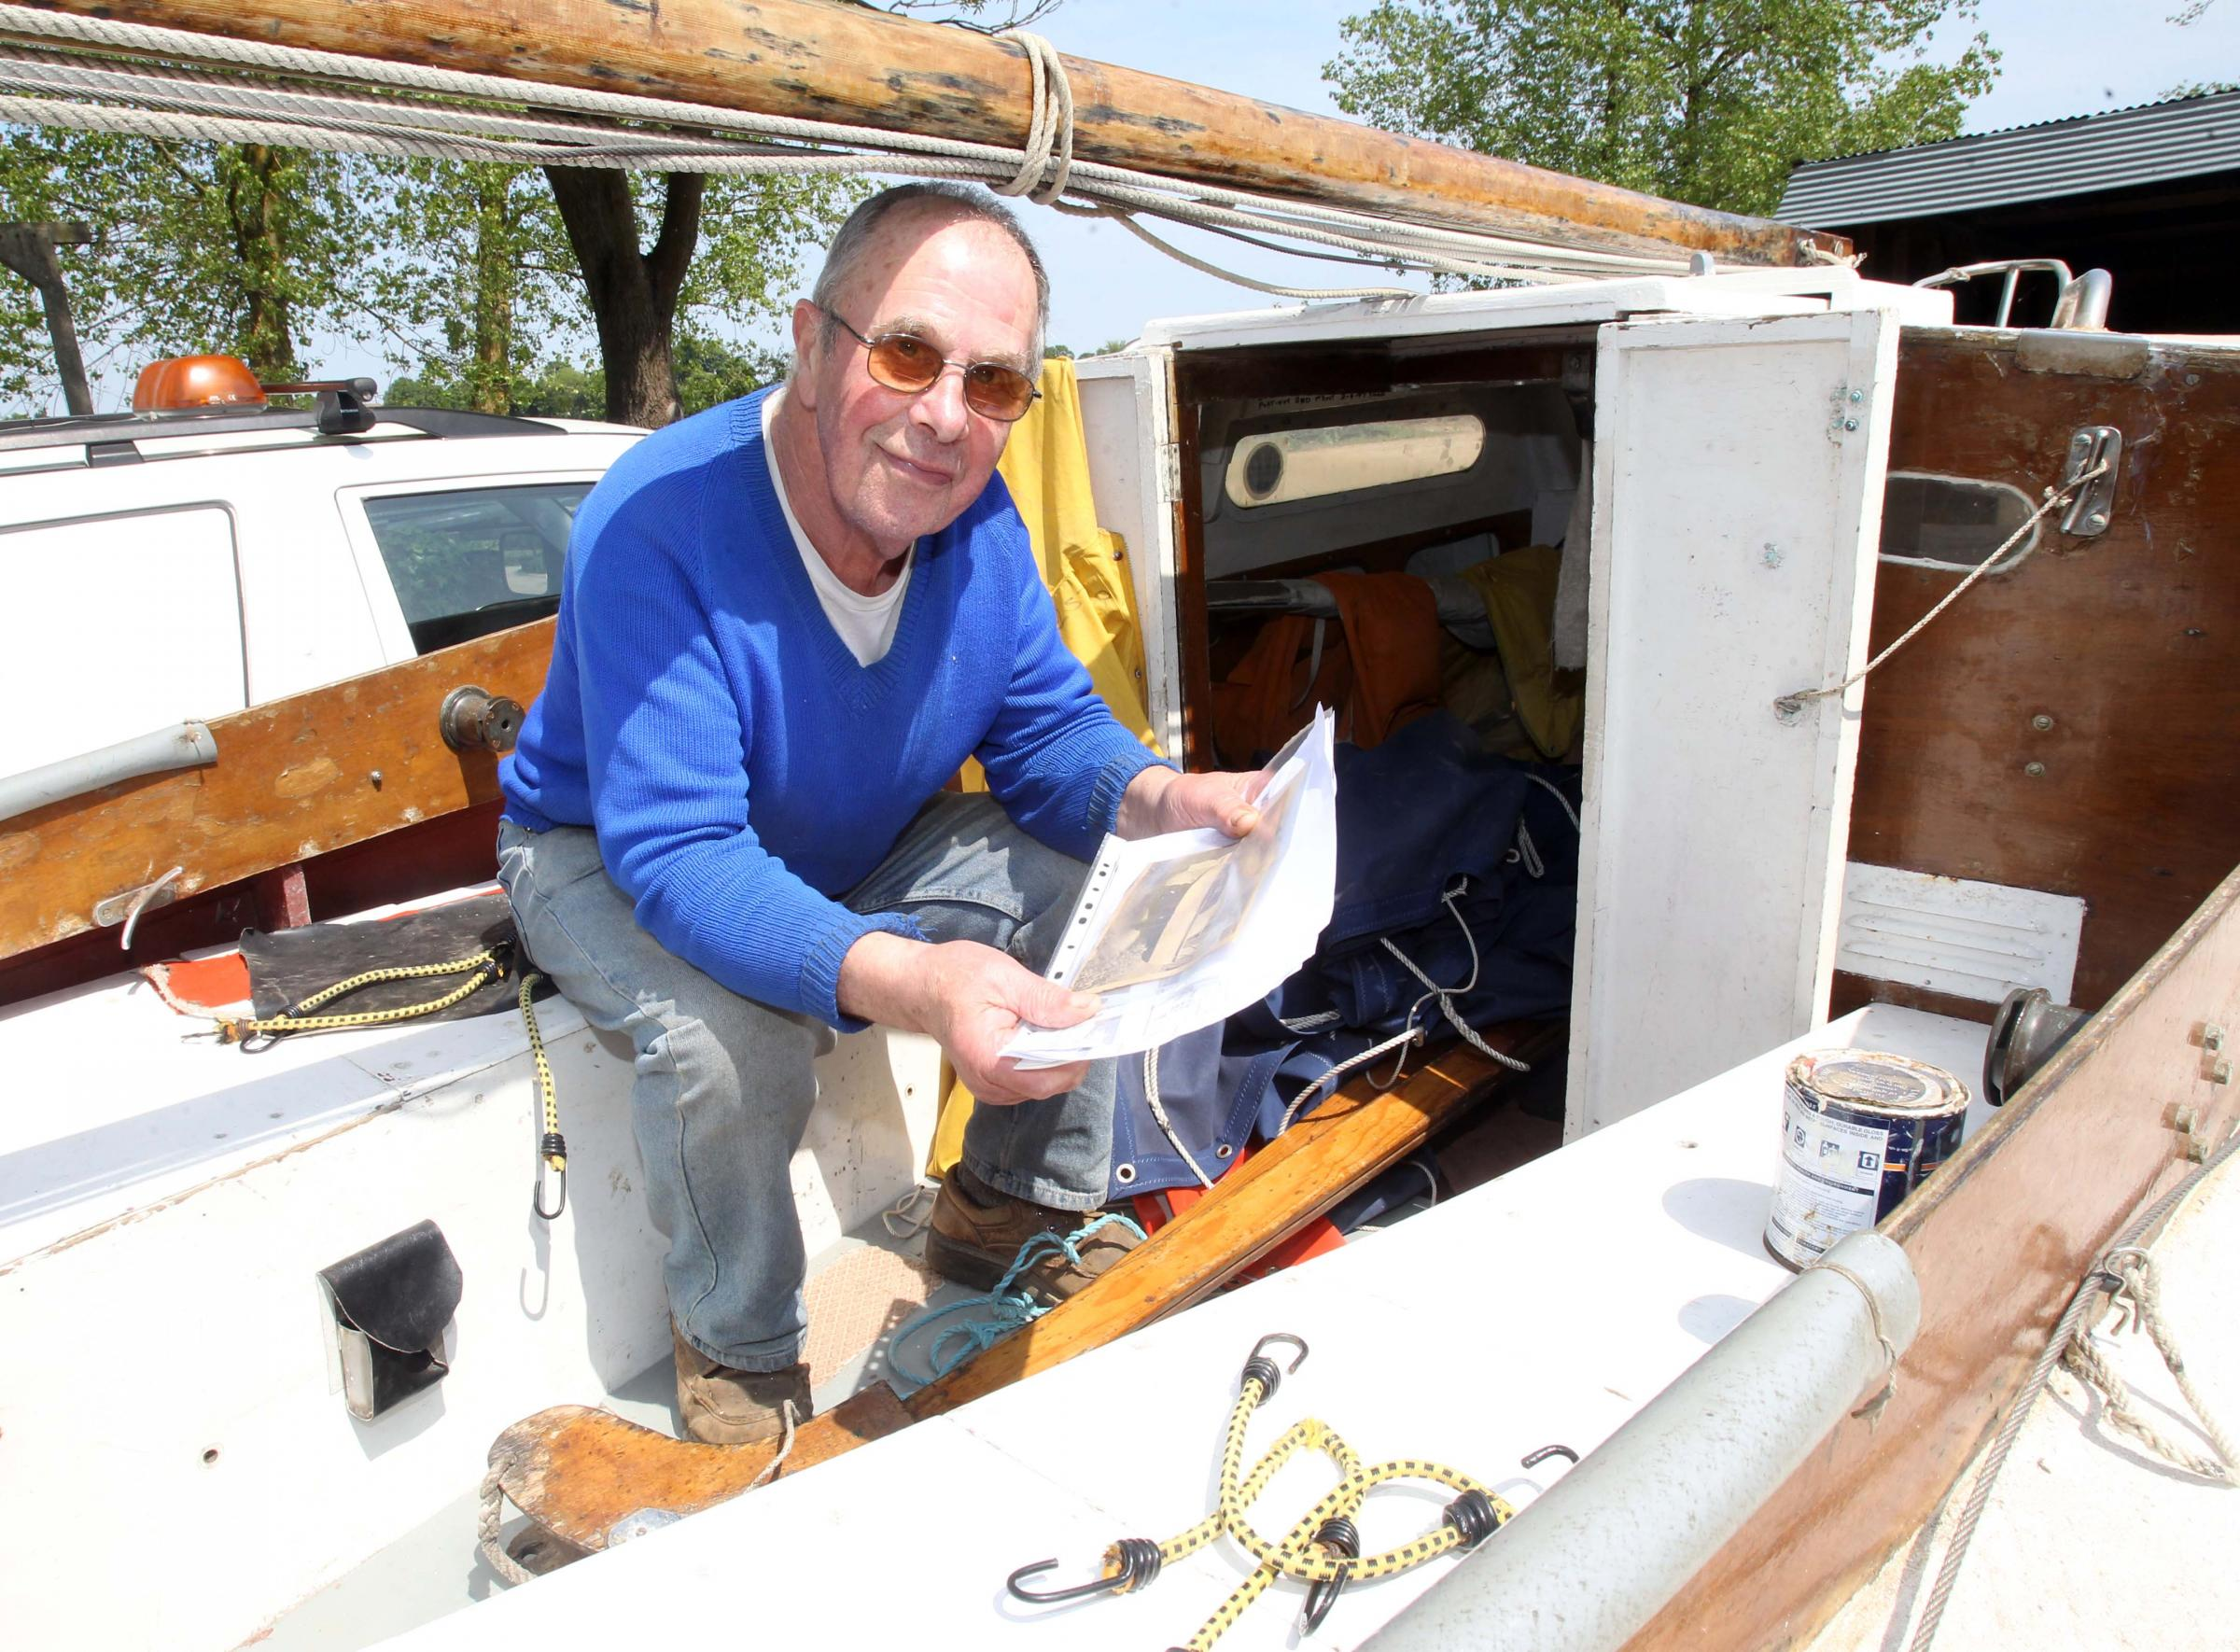 Graham's still sailing on after 50 years